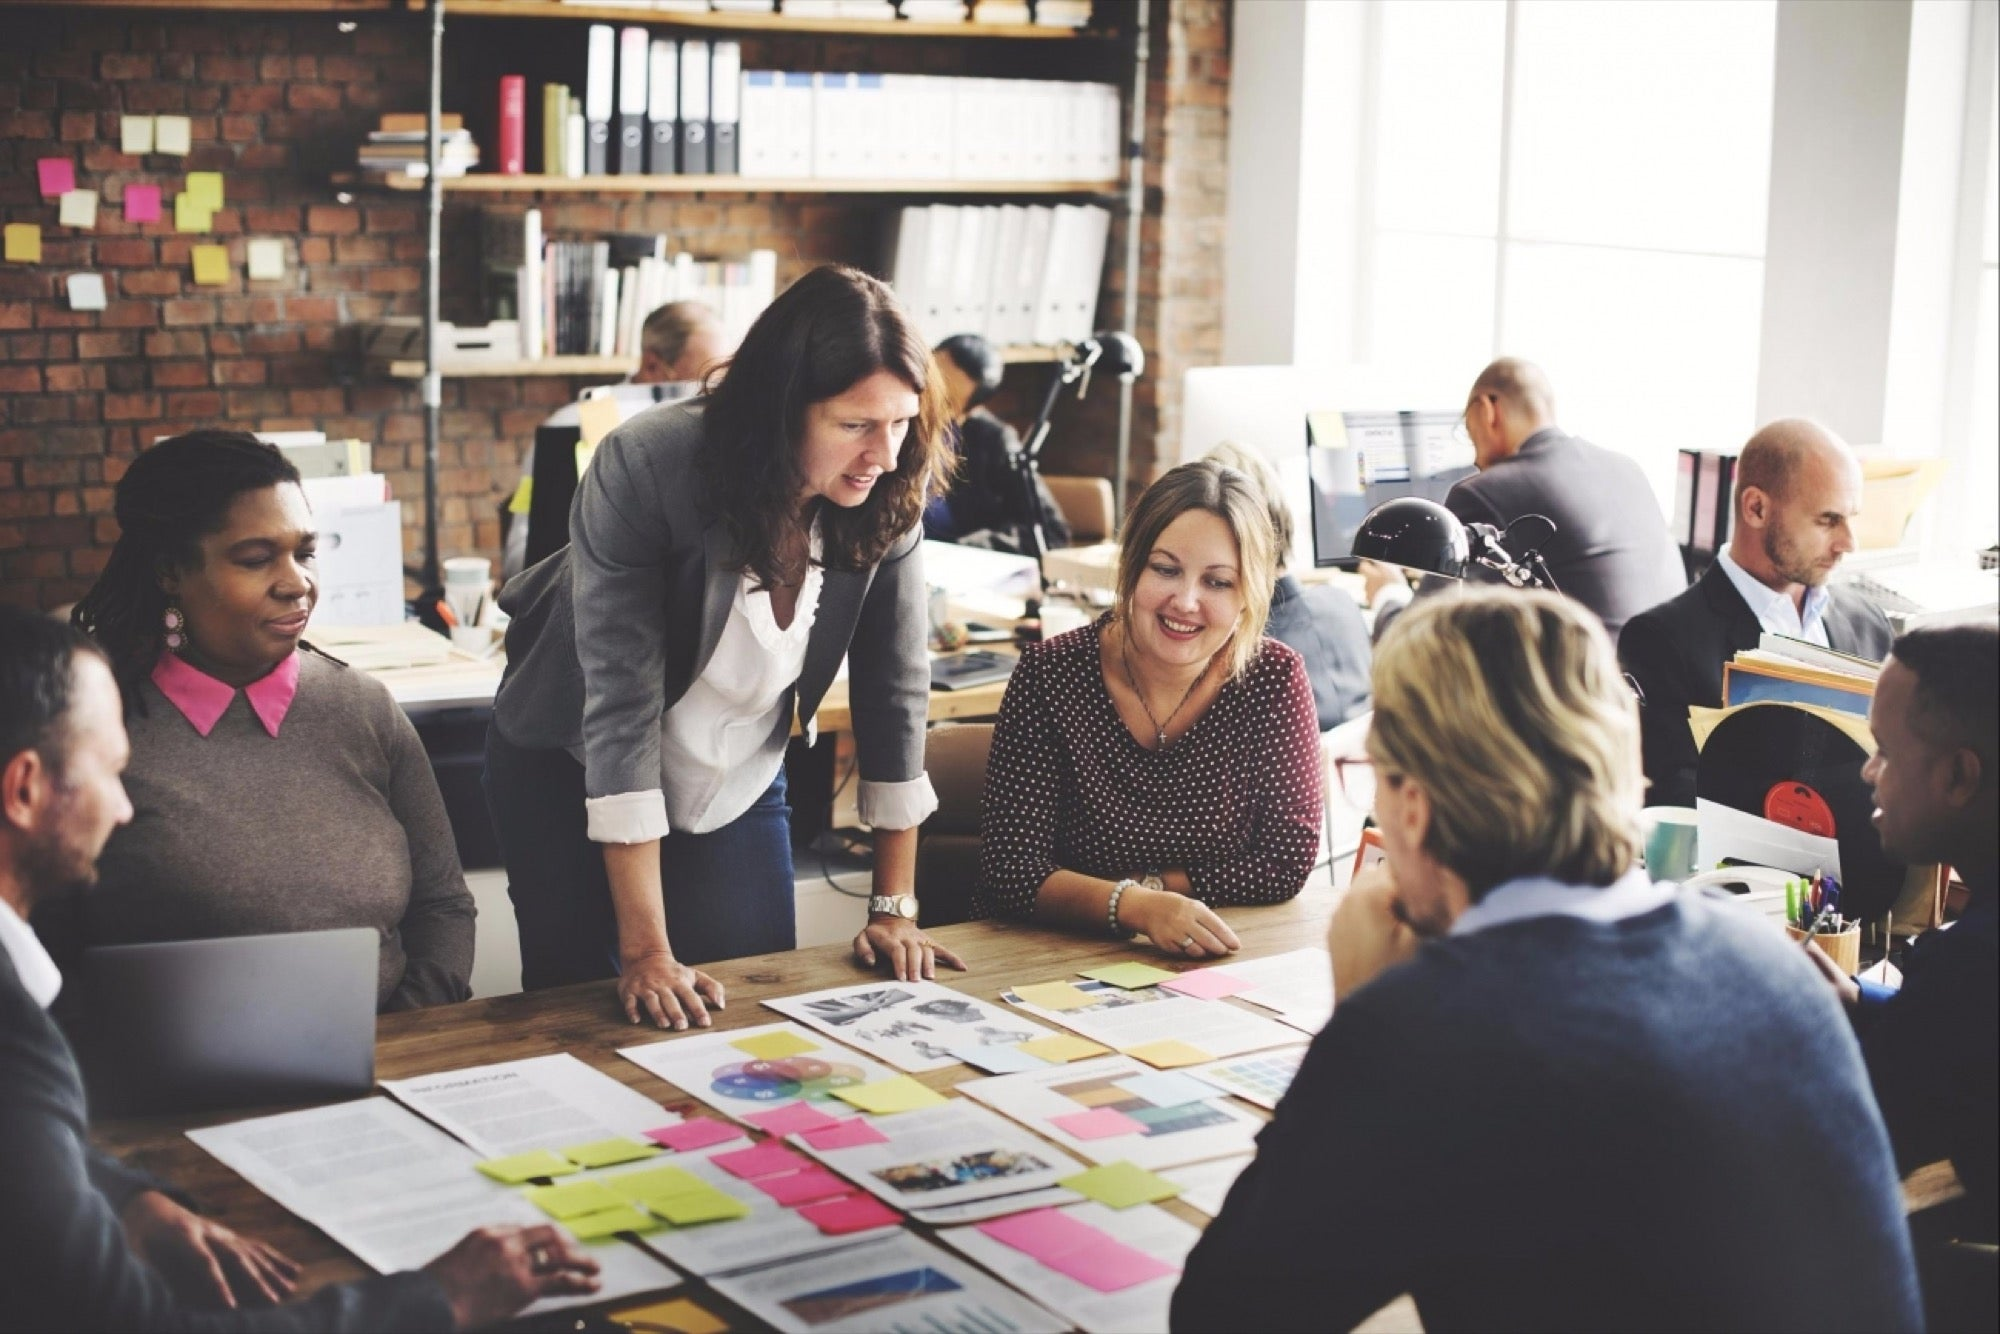 5 Ways You Can Create a More Inclusive Workplace Immediately